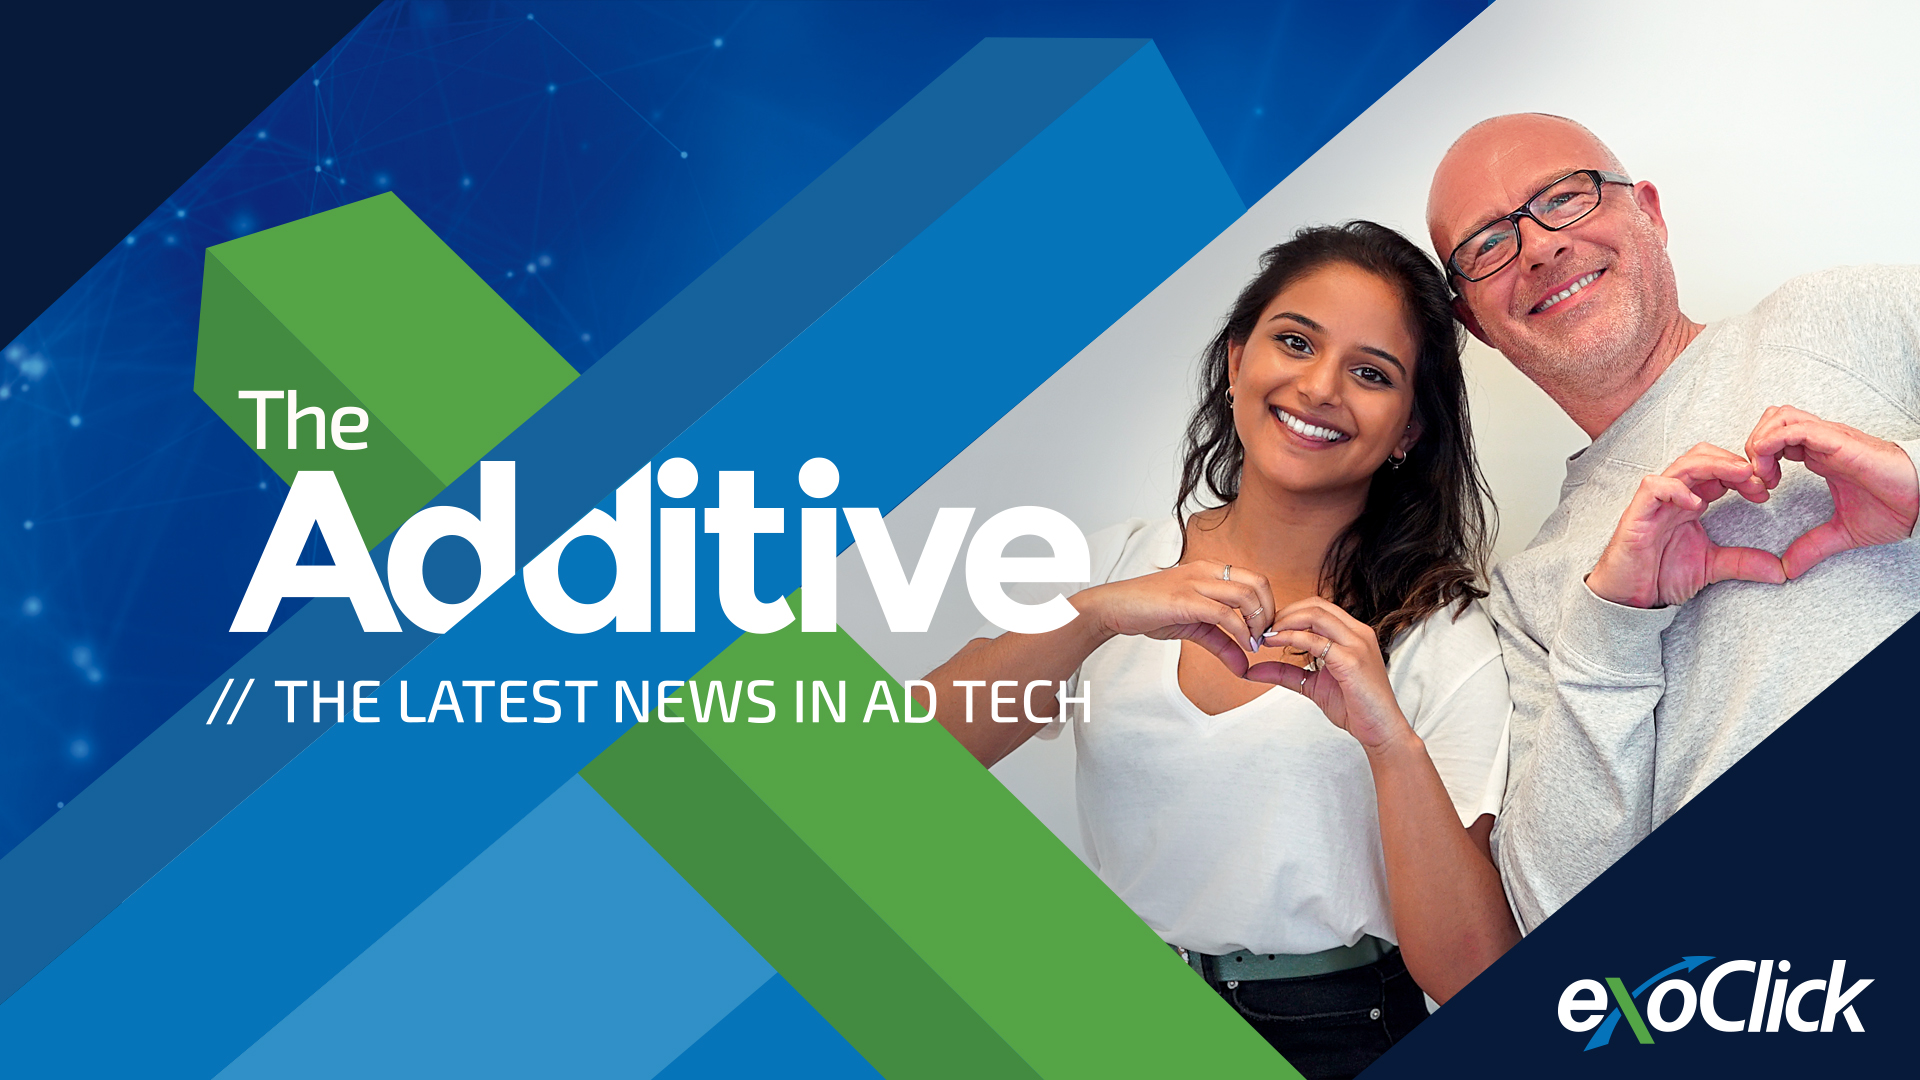 The Additive February 2020